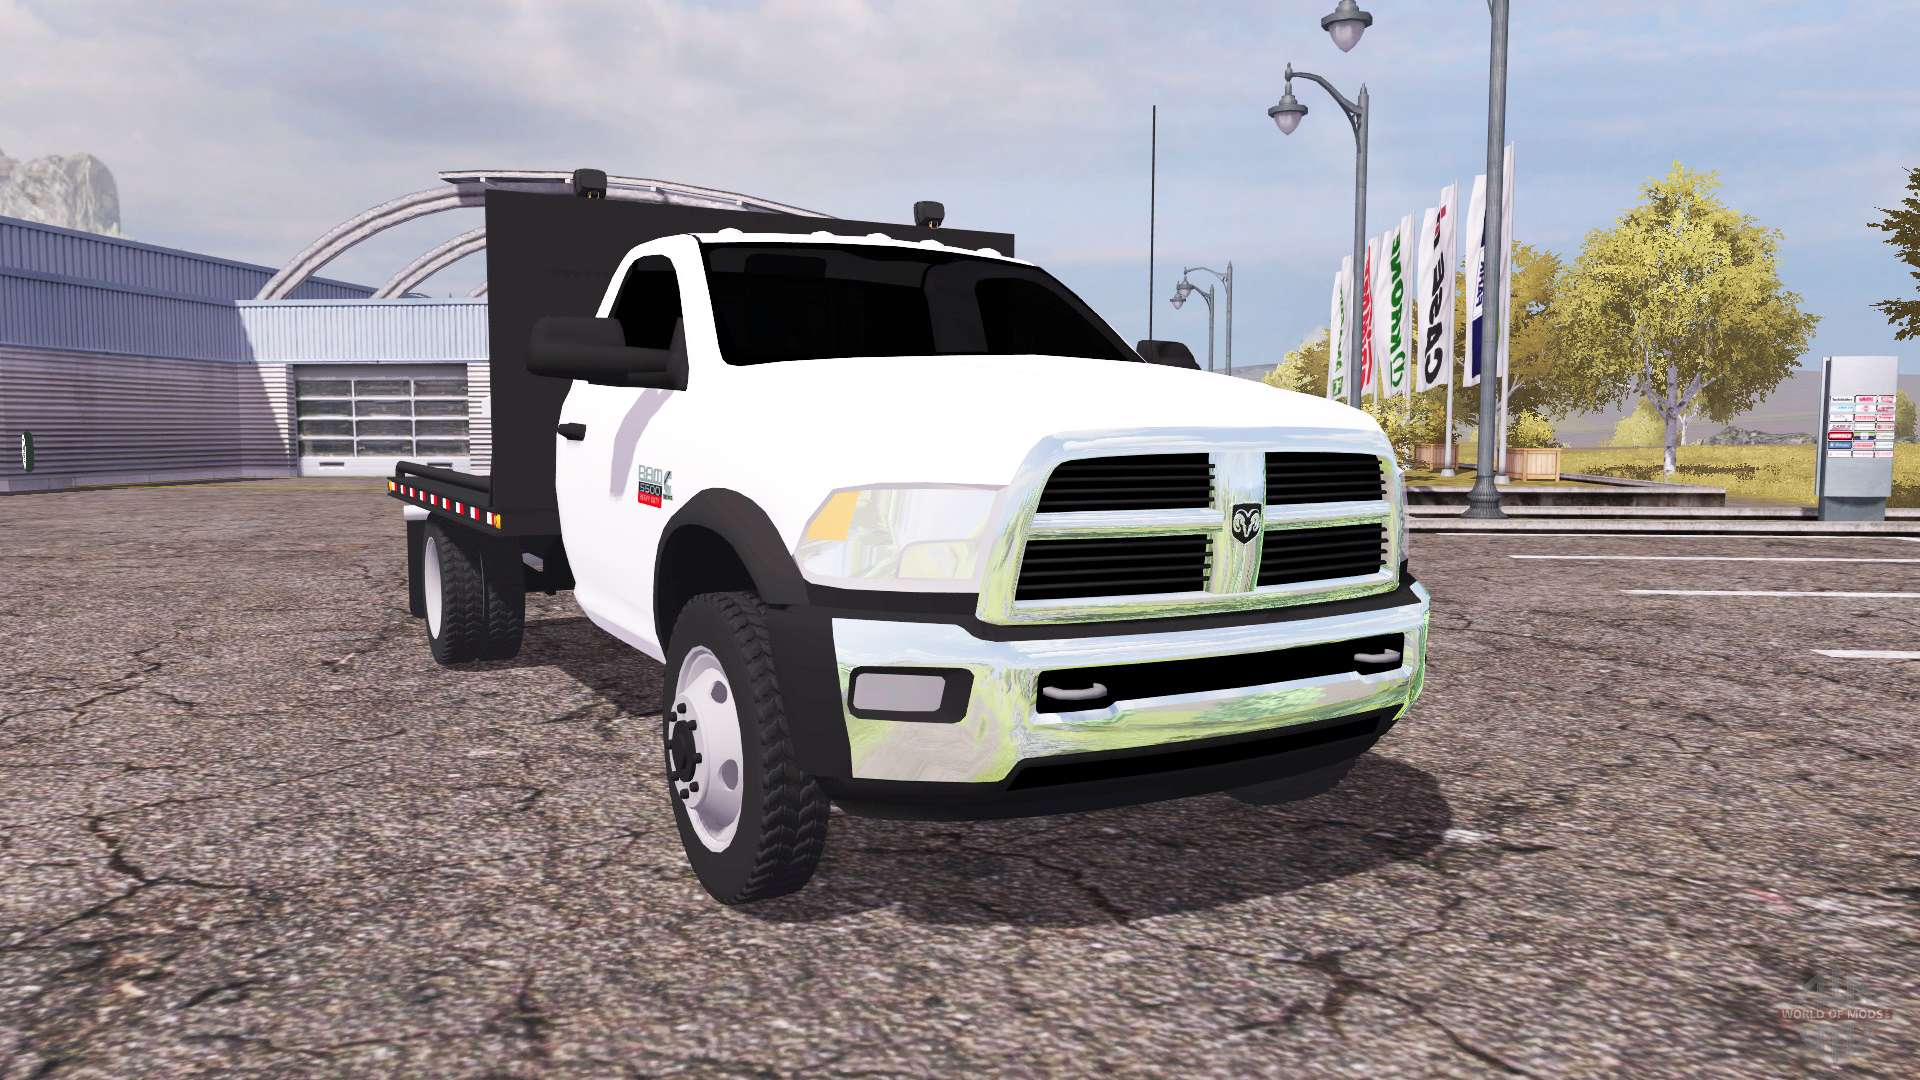 Dodge ram 5500 heavy duty flatbead for farming simulator 2013 for 5500 3